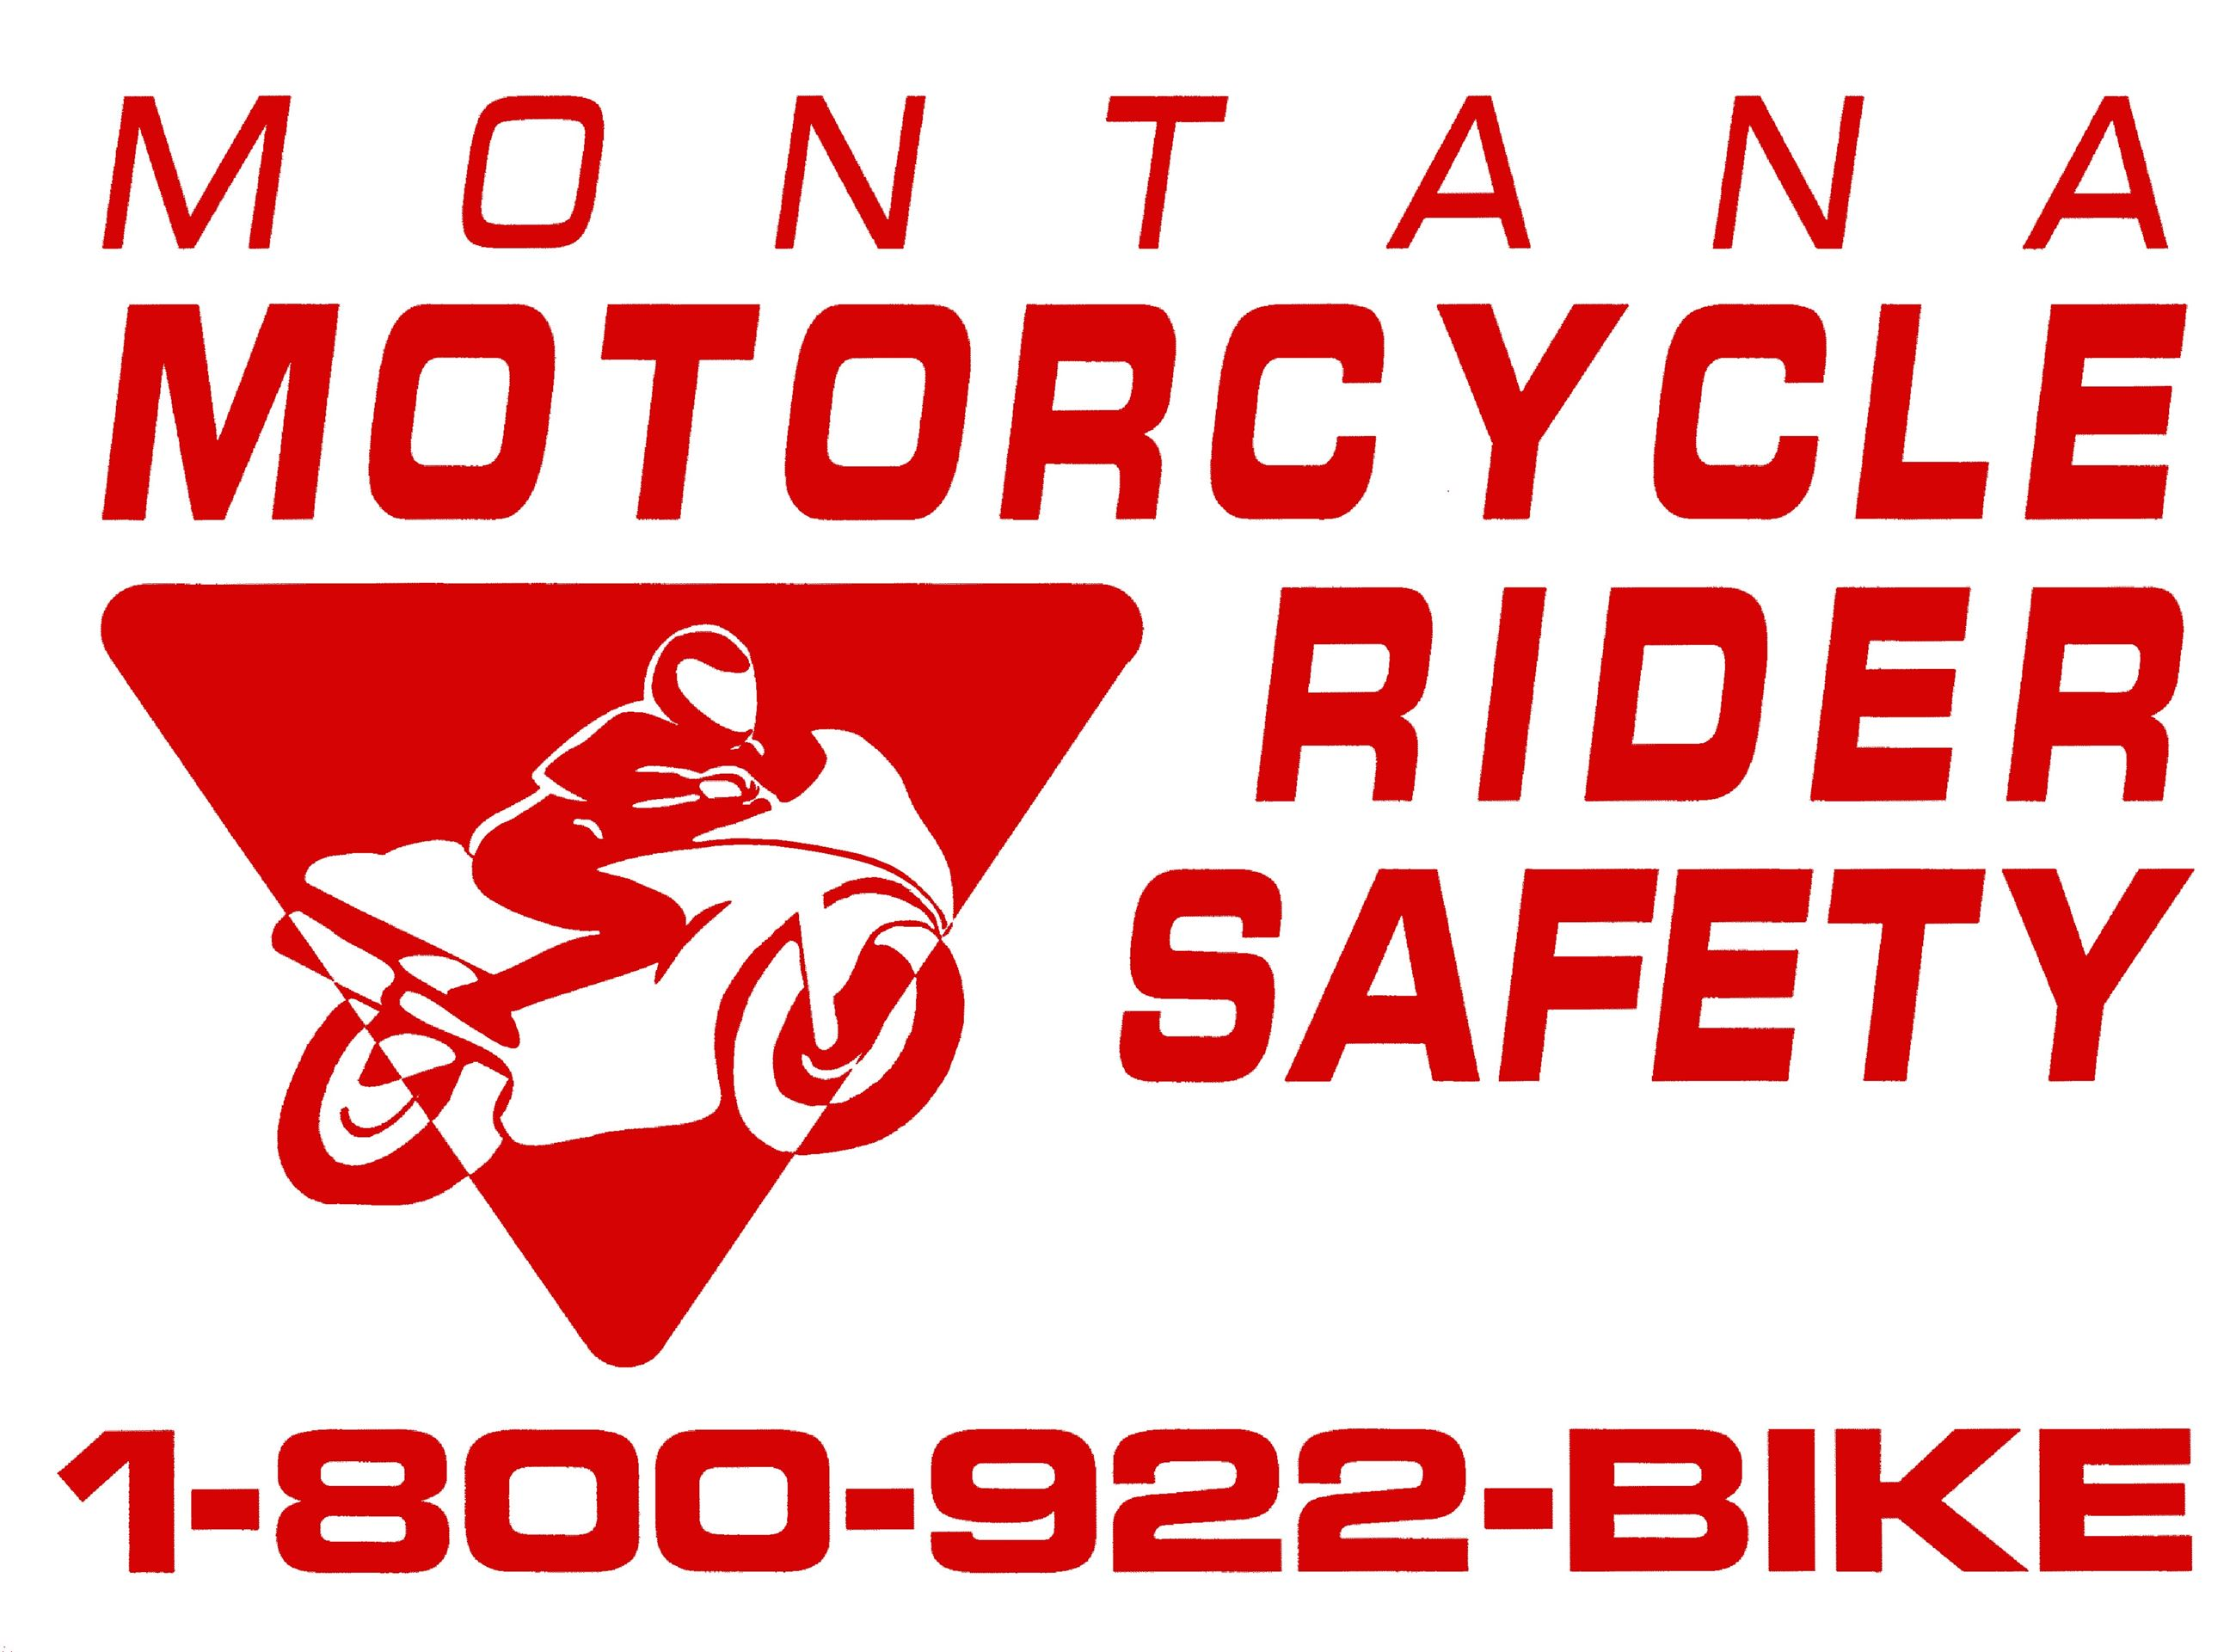 Montana Motorcycle Rider Safety